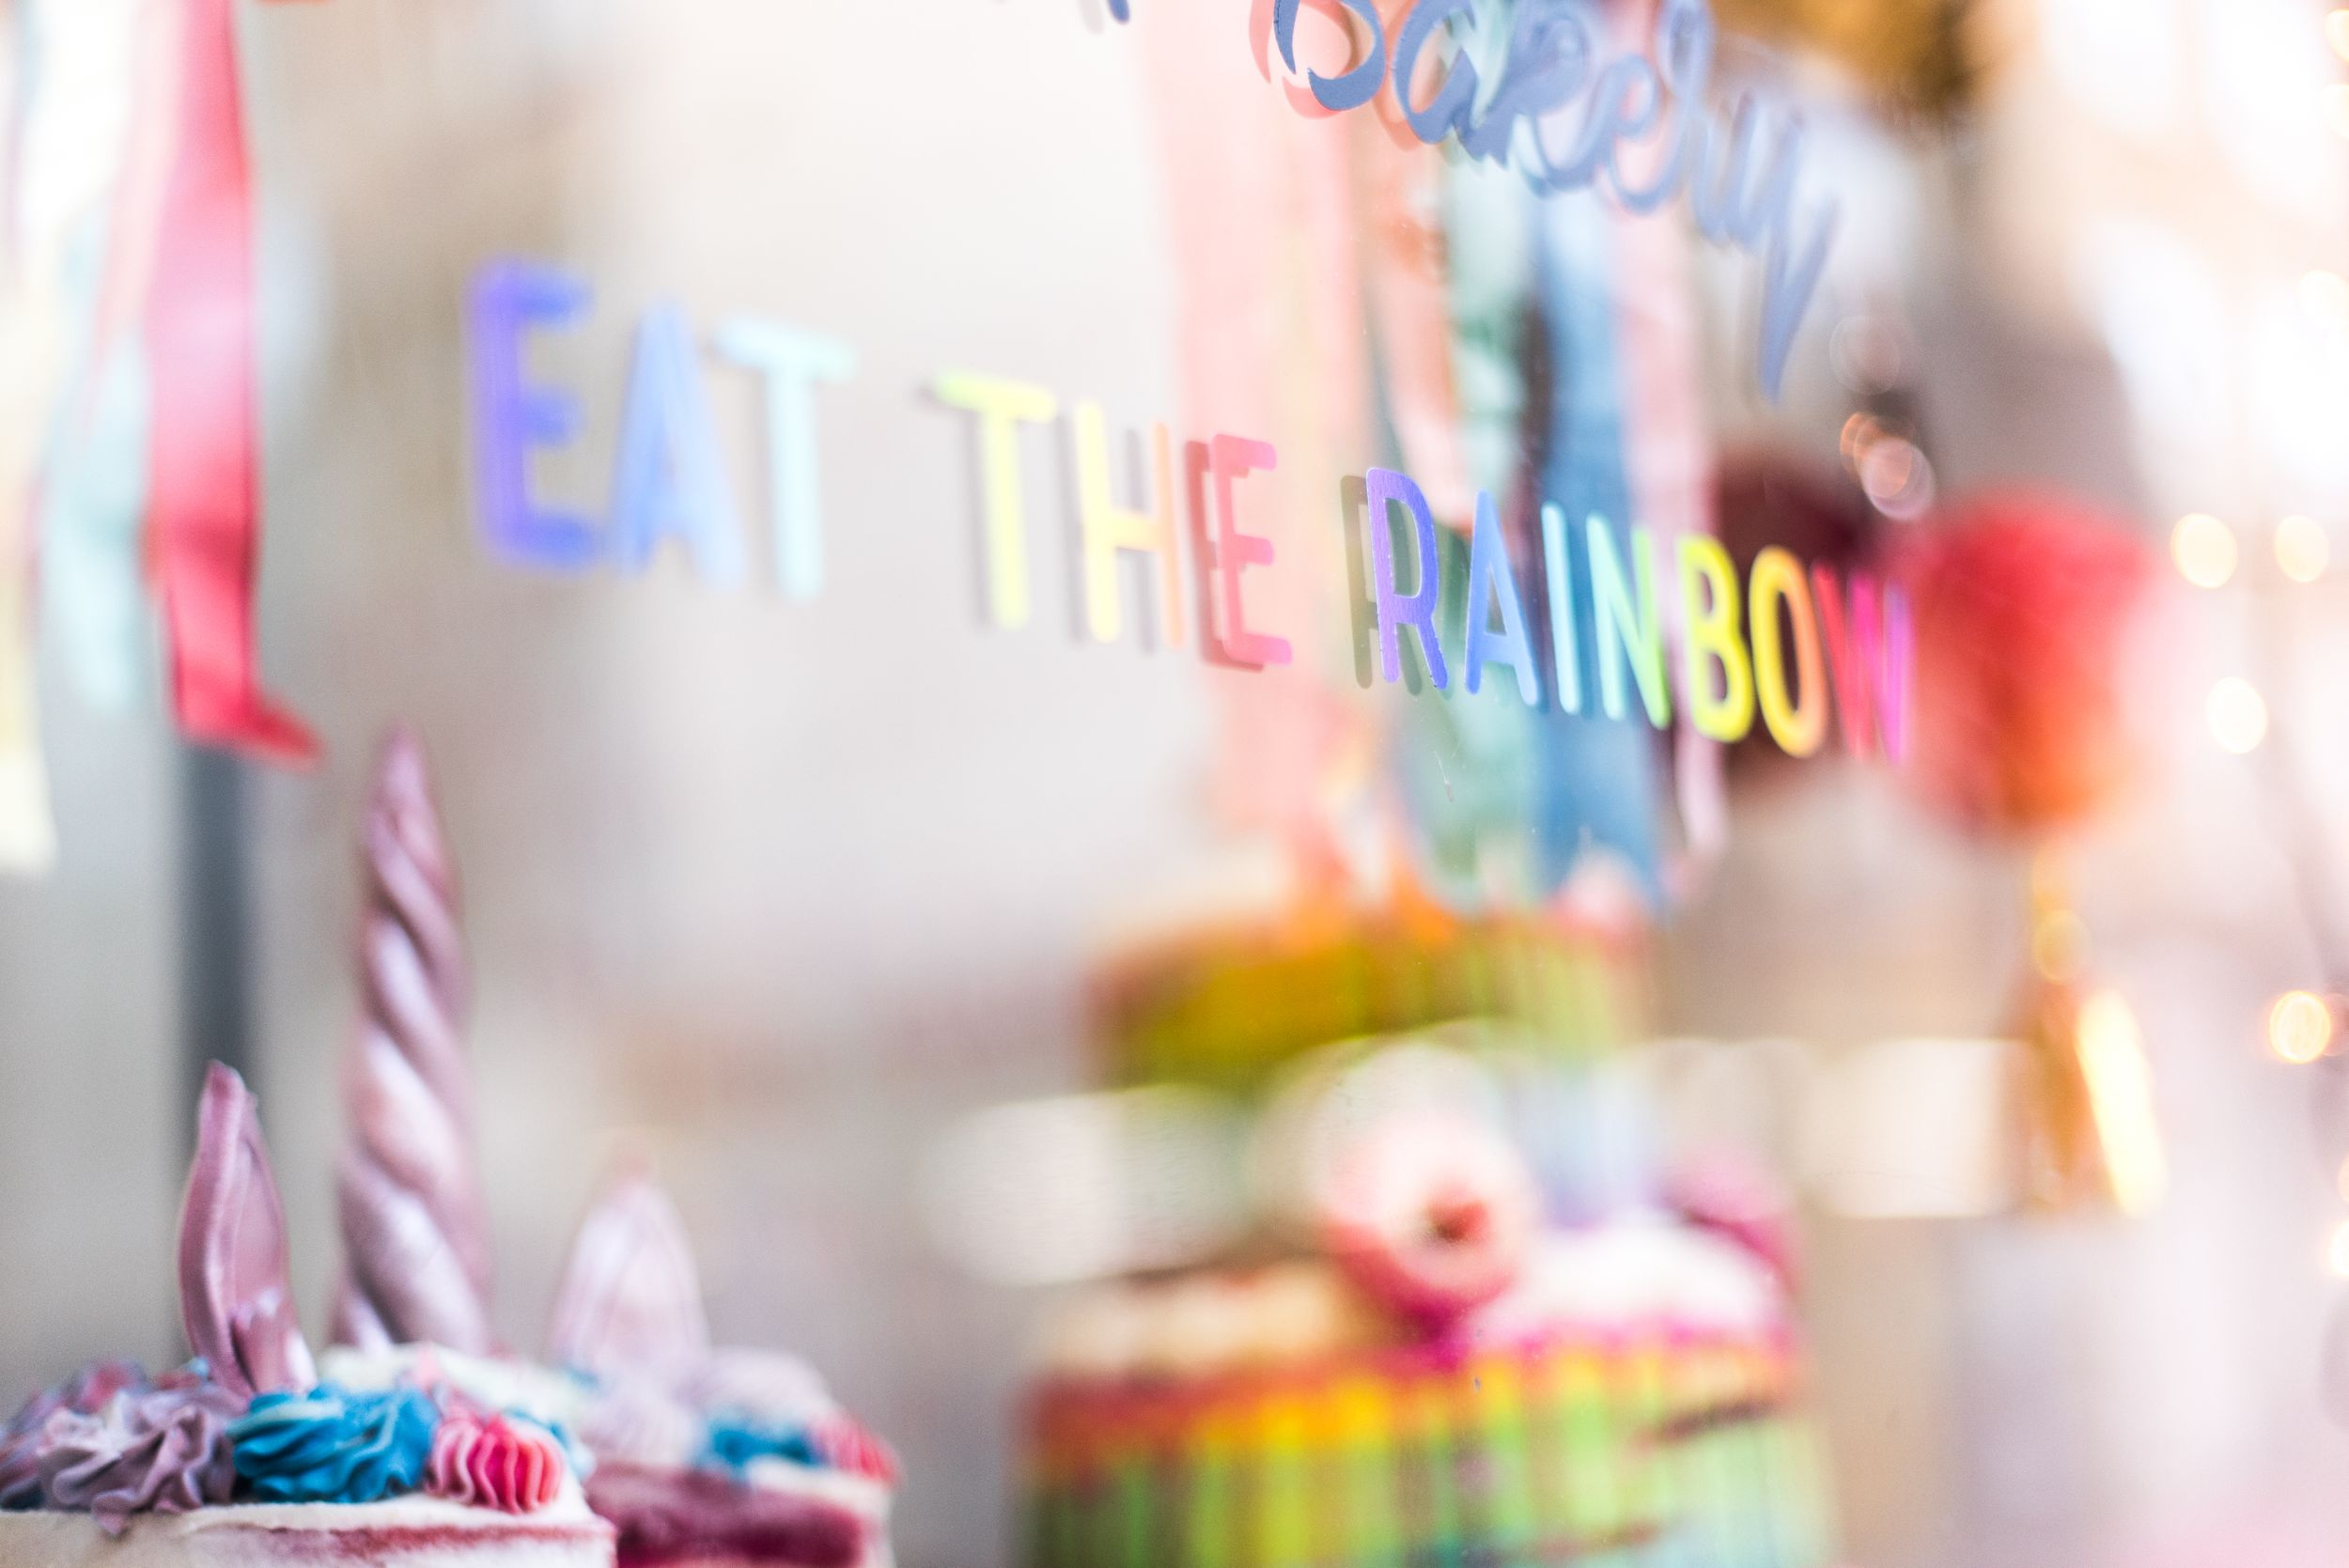 Colorful bakery window with rainbow reference